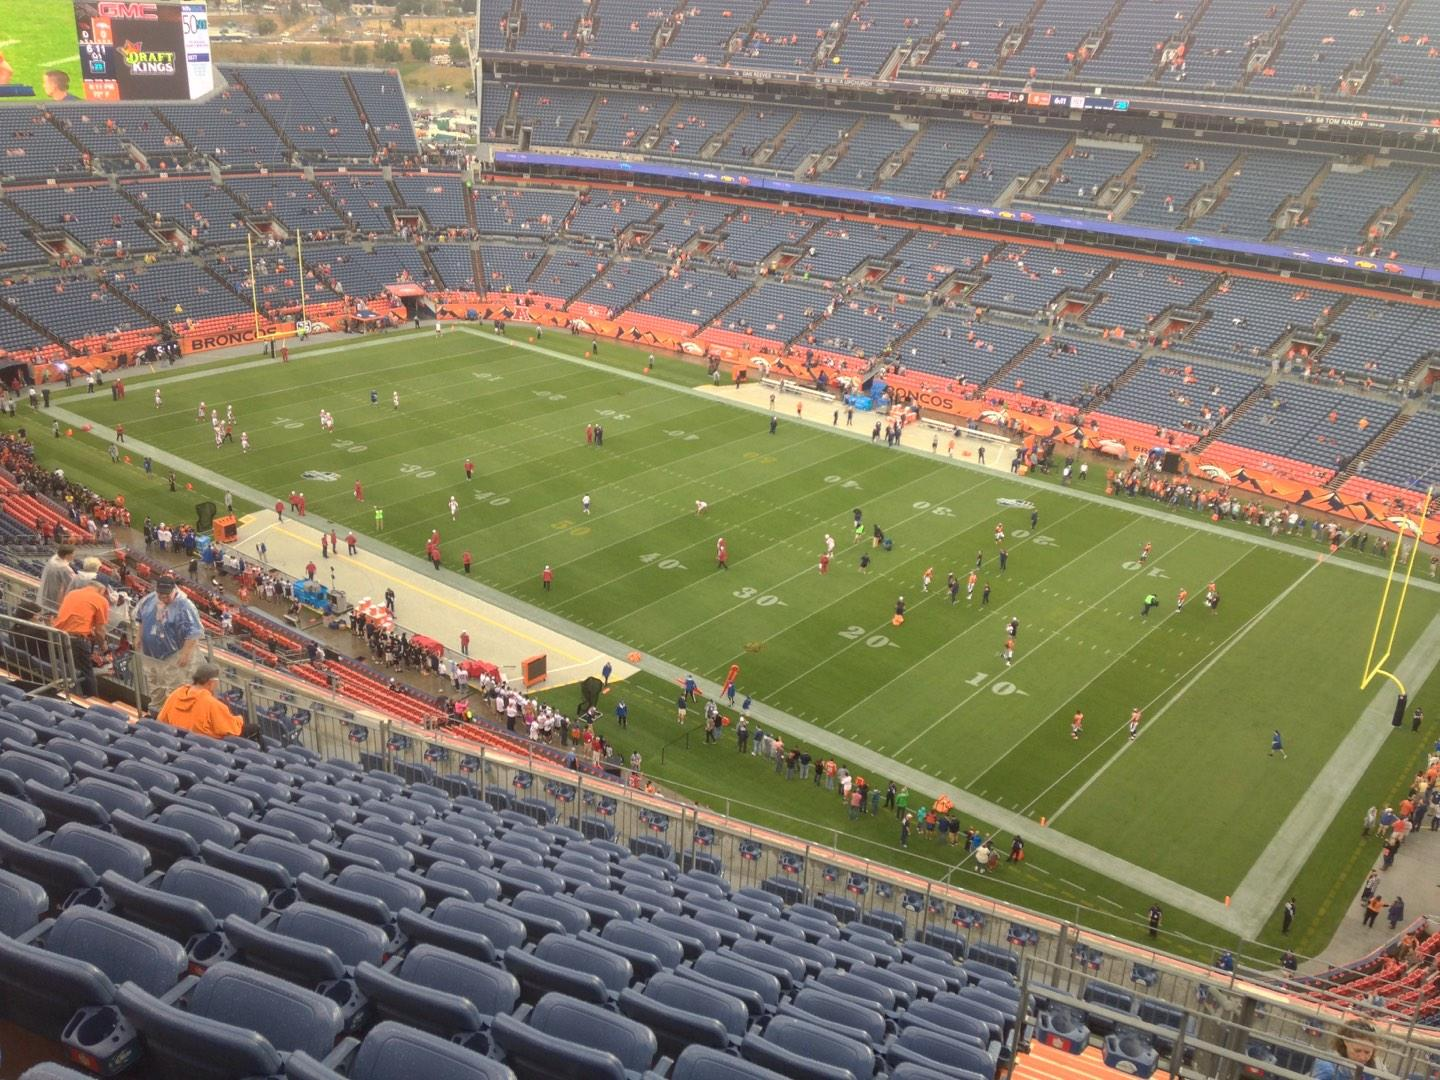 Sports Authority Field at Mile High Section 530 Row 19 Seat 5